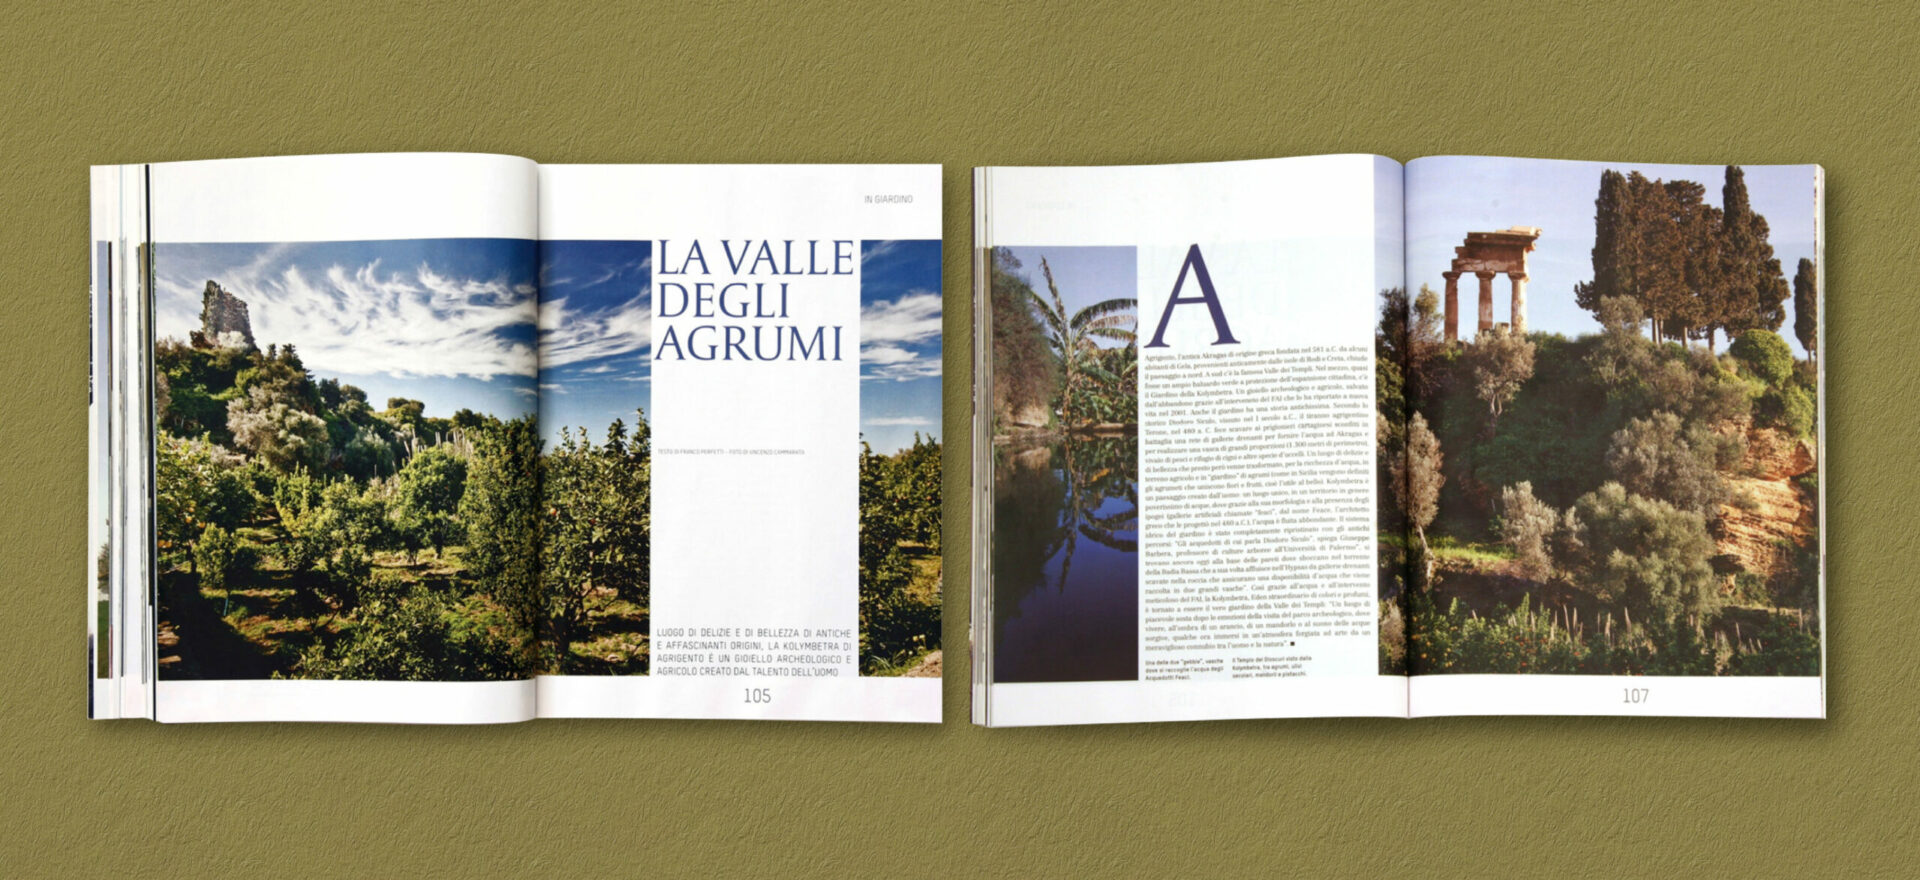 Two opened Ville Giardini magazines showing details of the typographies and compositions of text and images used in the project of the Art Direction and Graphic Design for Visibilia Editore in a brownish yellow background.